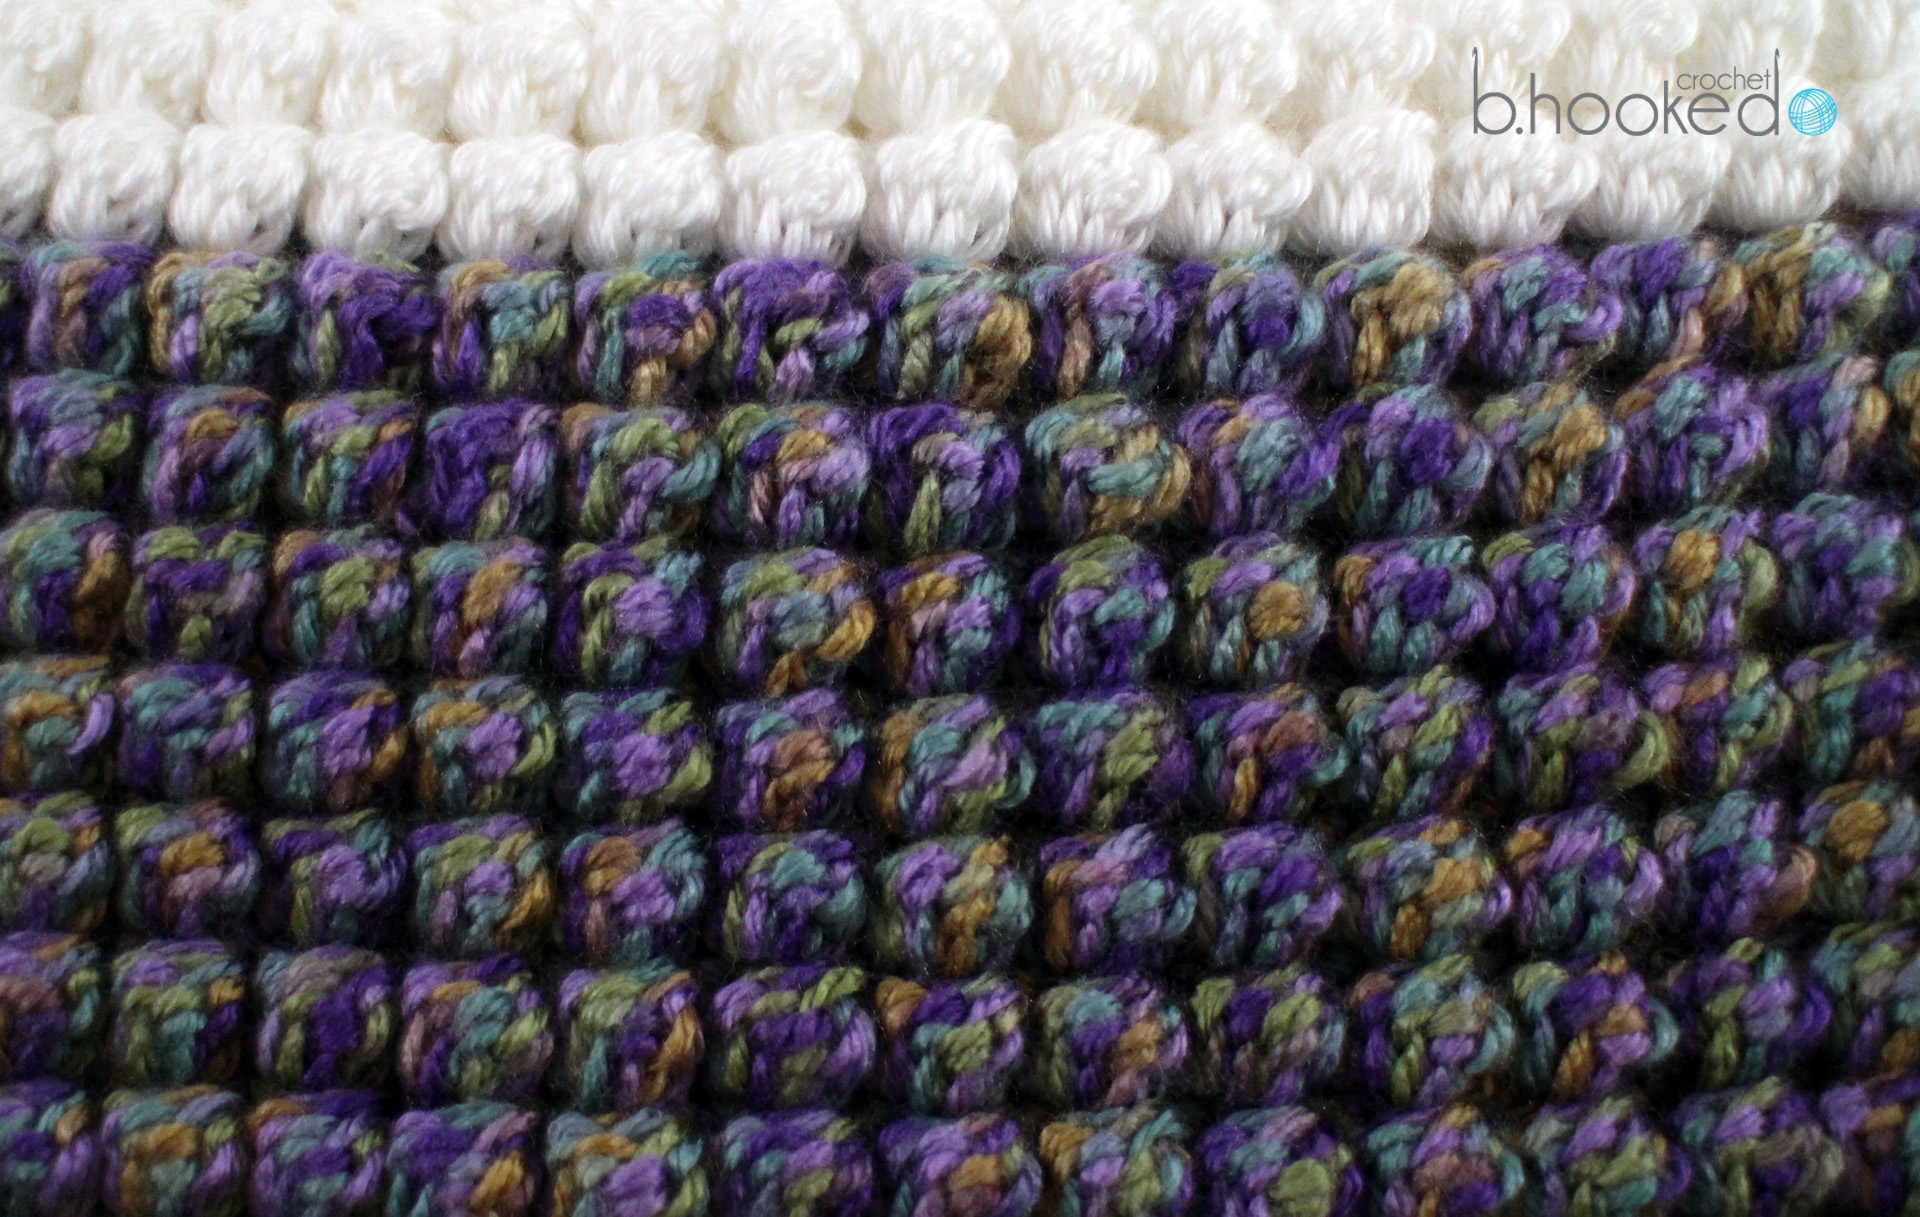 Crochet Stitches Bobble : Crochet Bobble Stitch - B.hooked Crochet